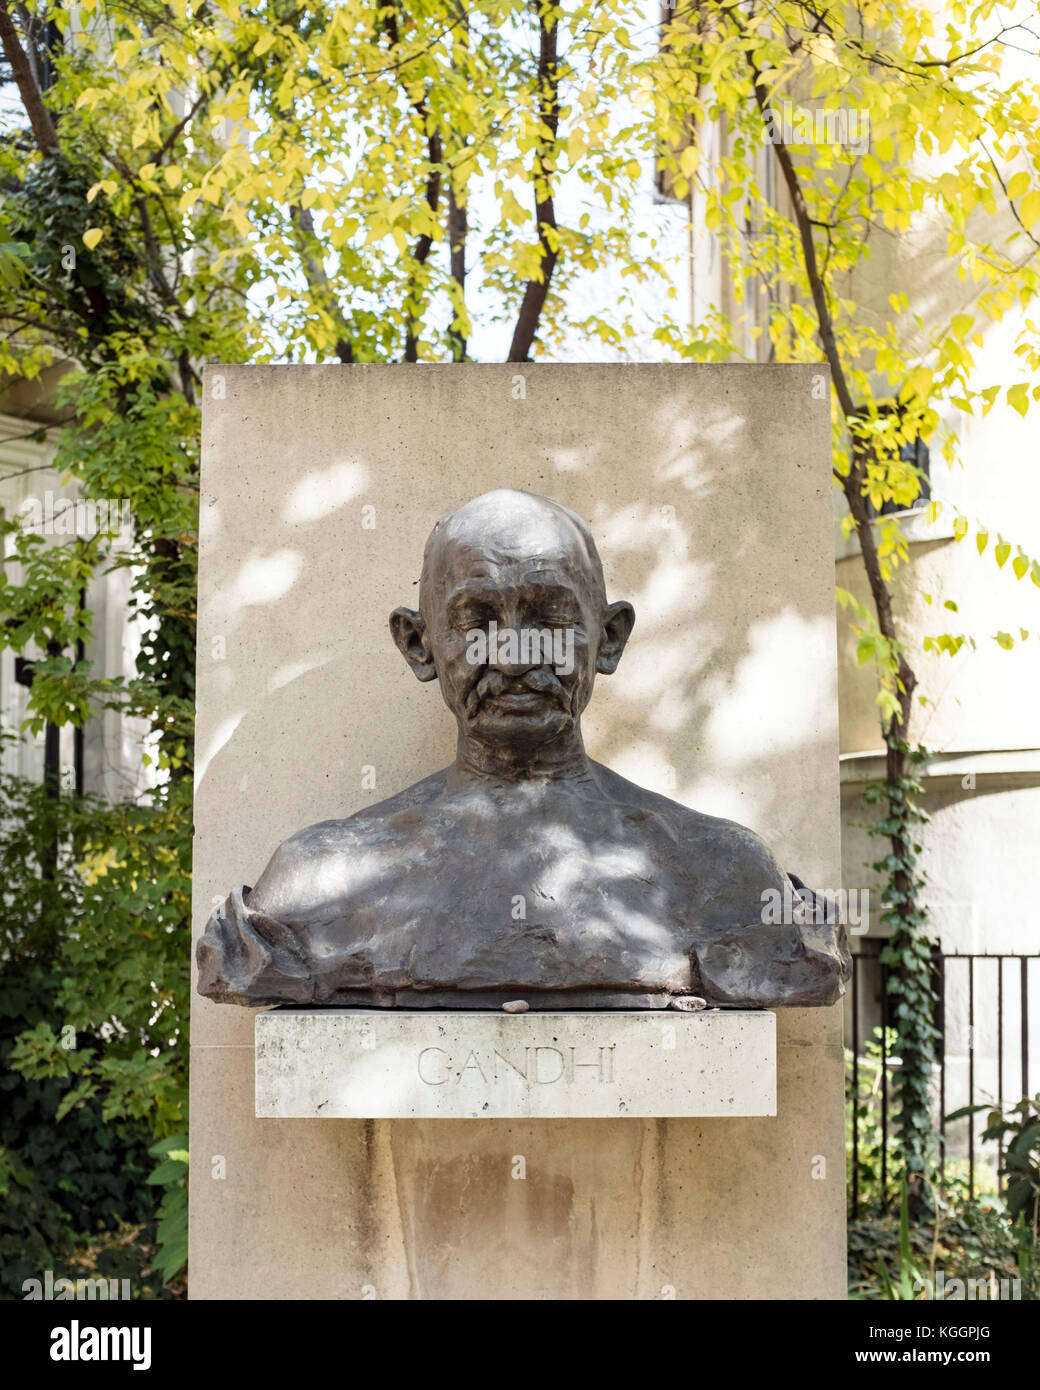 Ferenc Hopp Museum of East Asian Arts, Hungary: Gandhi statue in the garden - Stock Image